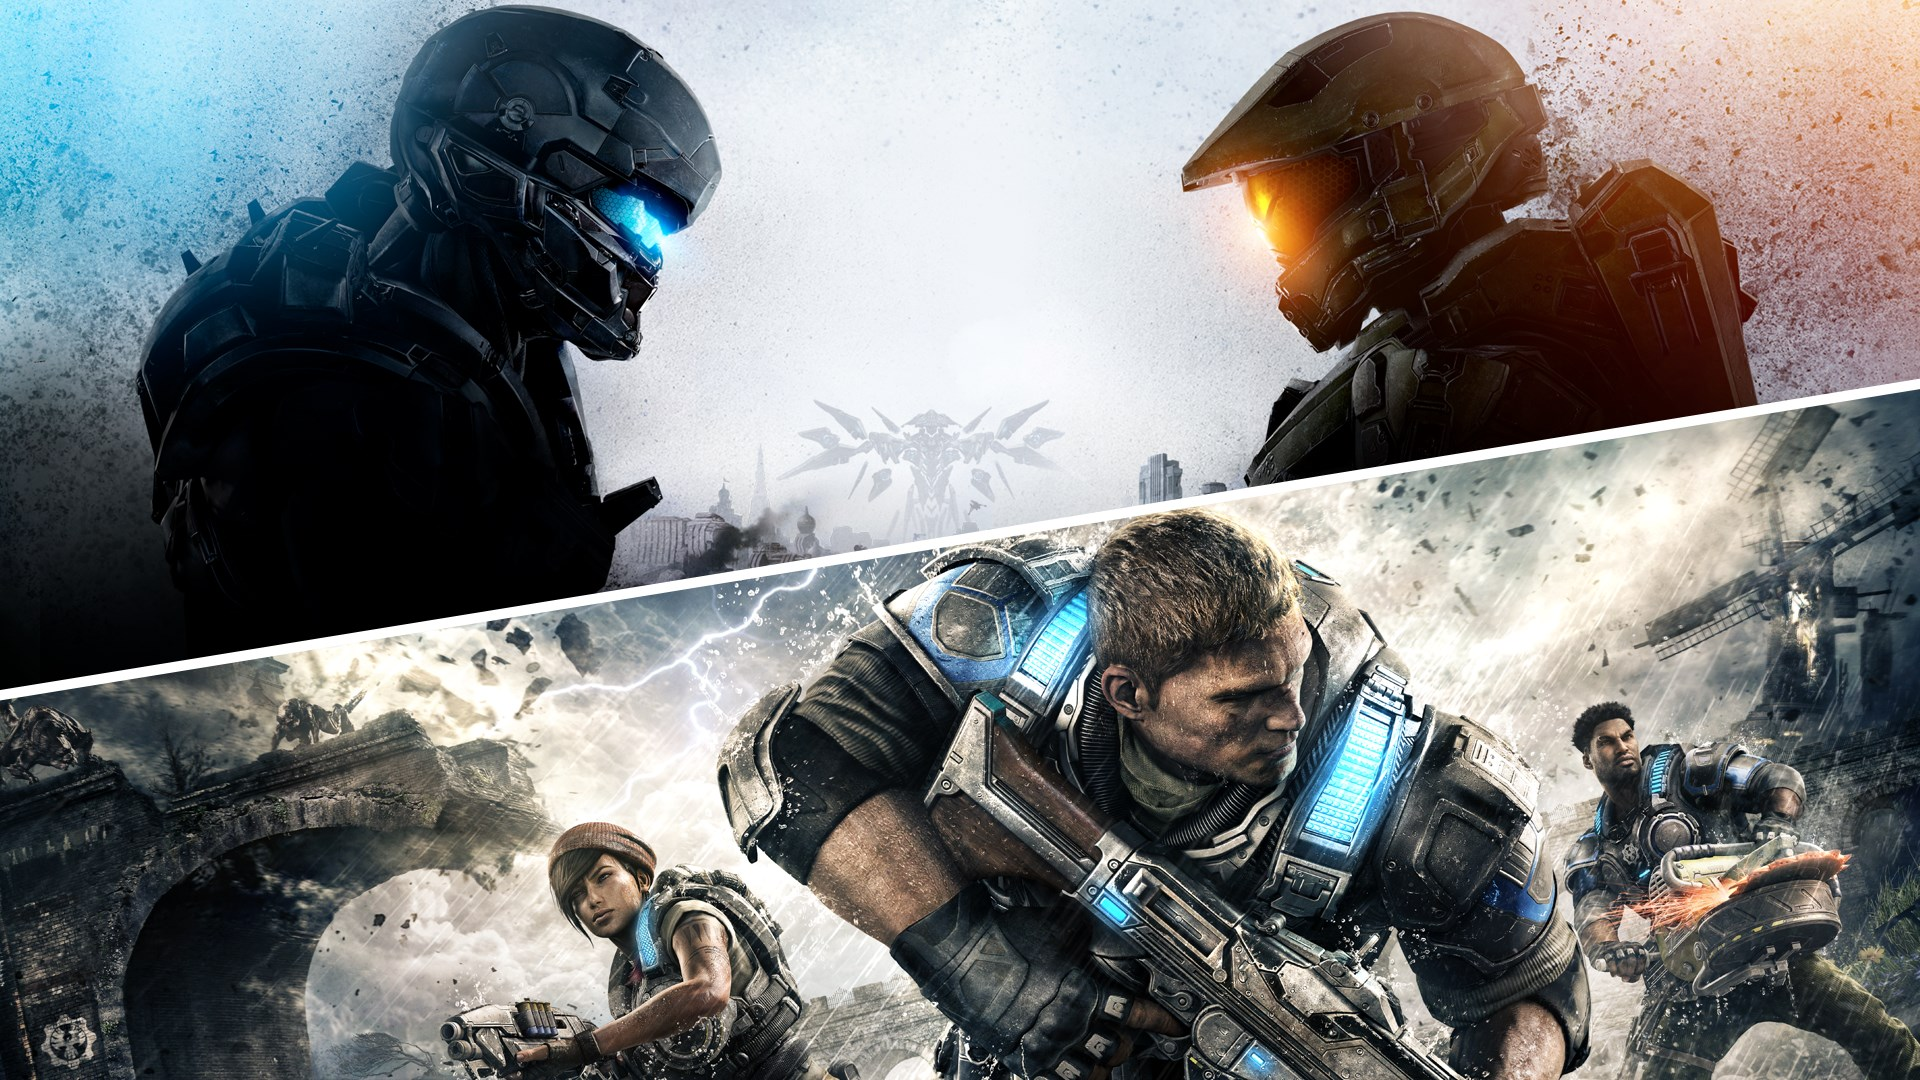 Buy Gears of War 4 and Halo 5: Guardians Bundle - Microsoft